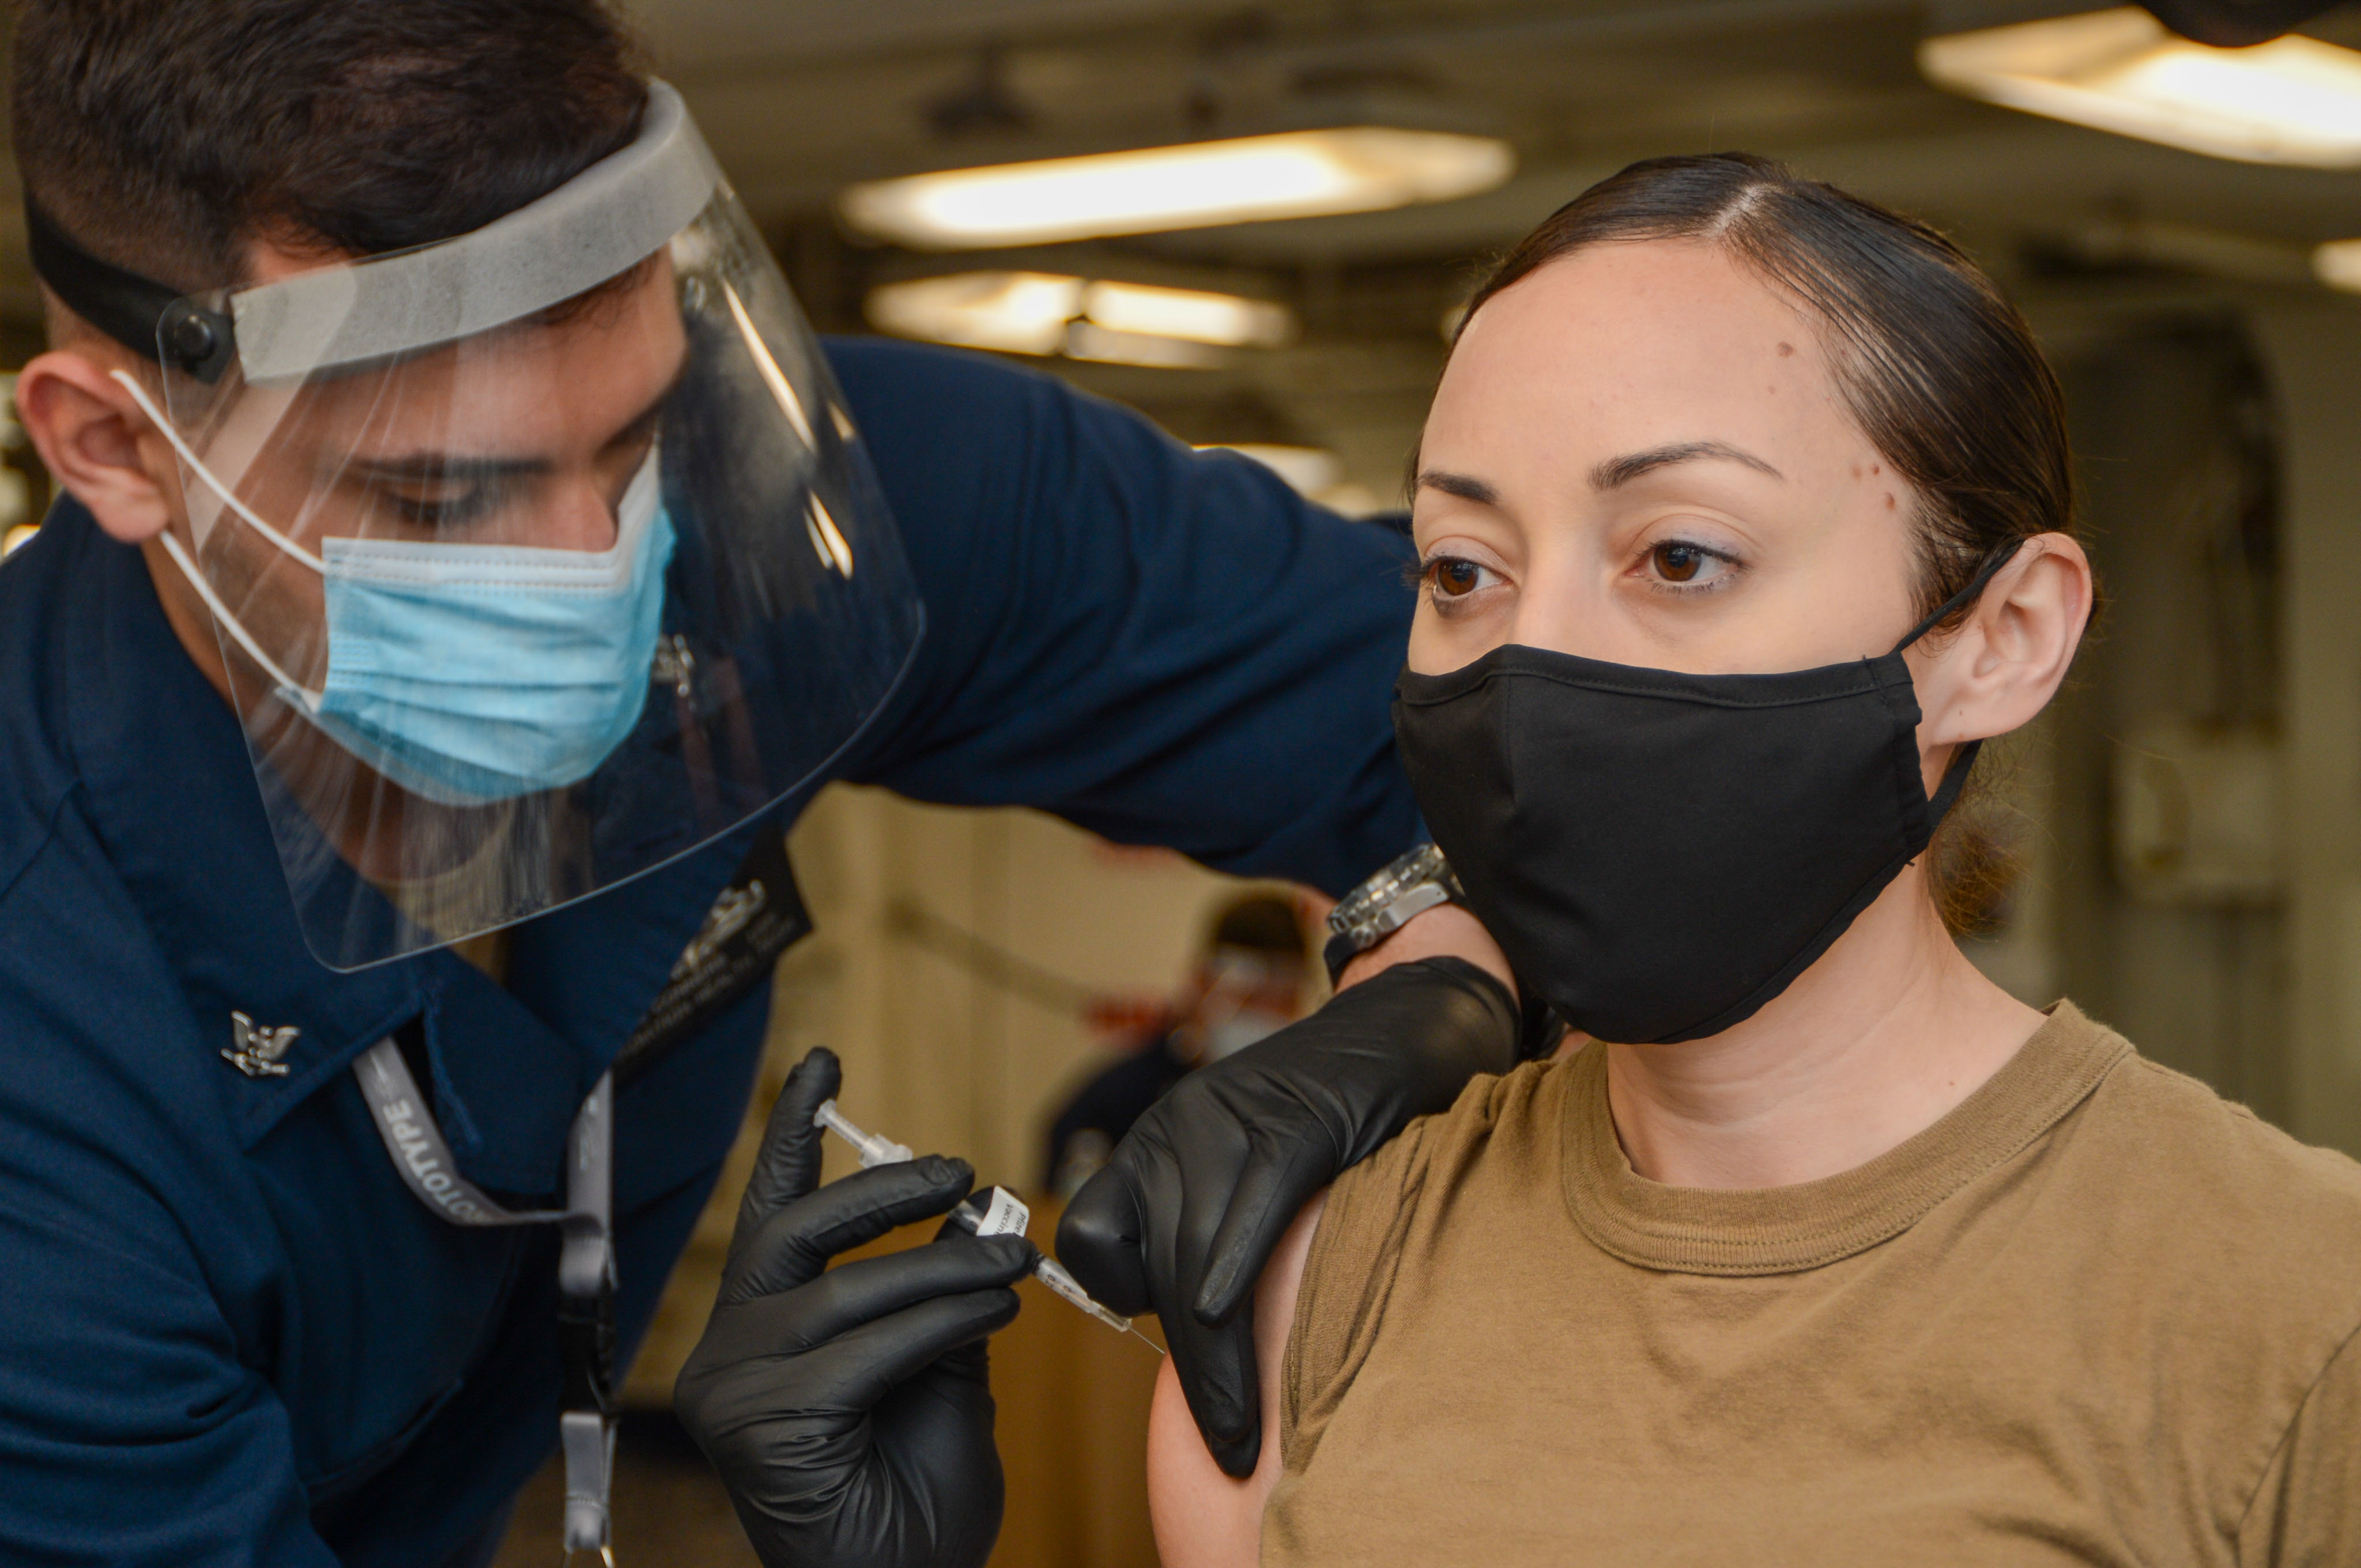 Hospital Corpsman 3rd Class Charles Conners, left, from Carmel, Indiana, administers a COVID-19 vaccine to Information Systems Technician 1st Class Krystina Garcia, from San Antonio, on the forward mess decks aboard the Nimitz-class aircraft carrier USS Harry S. Truman (CVN 75).